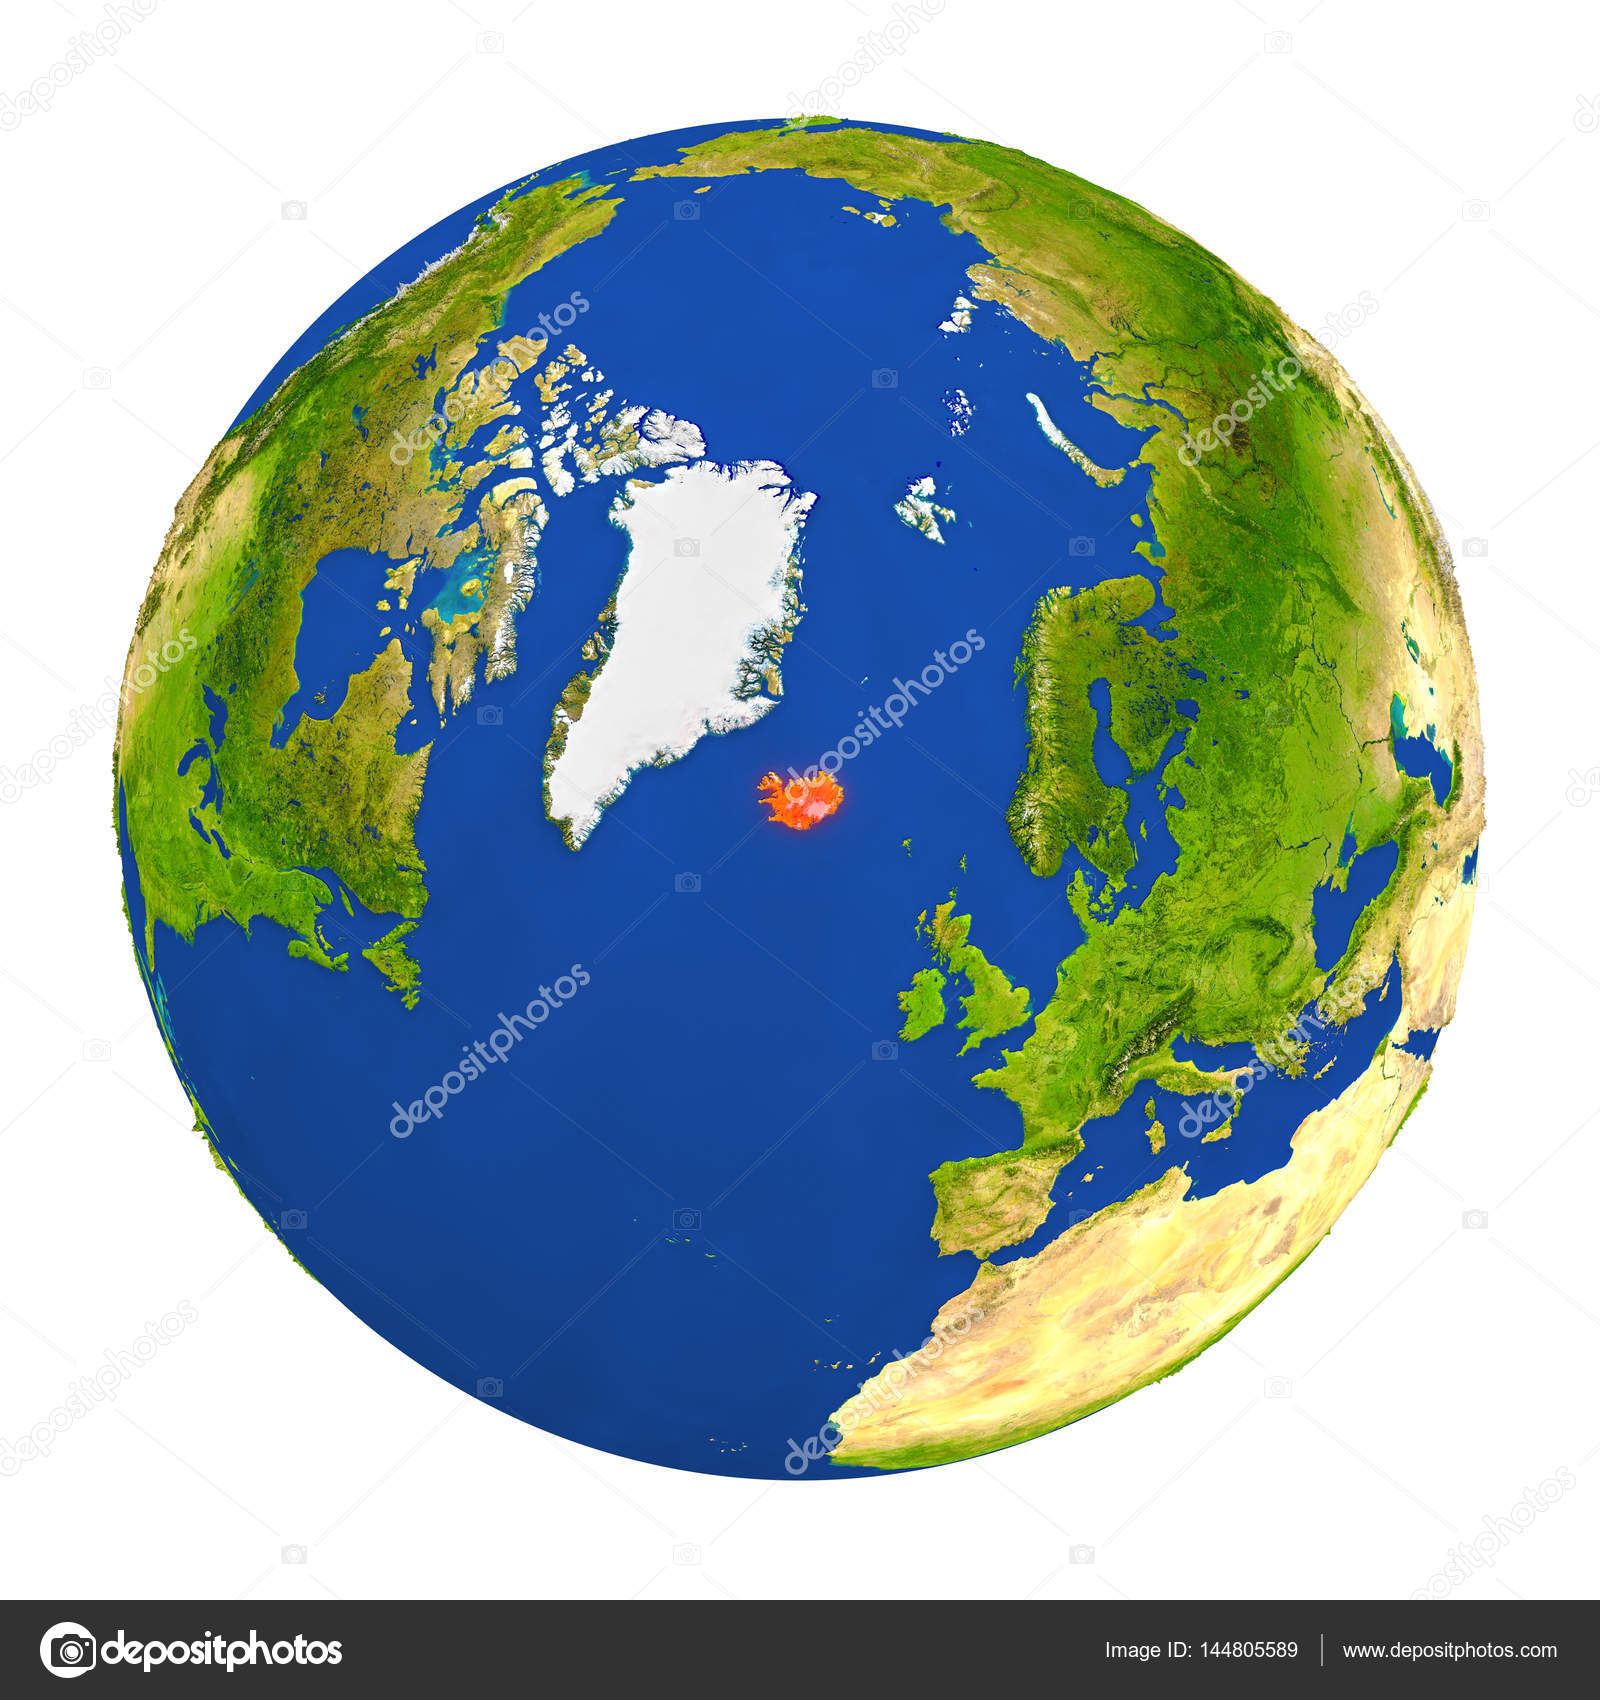 Iceland highlighted on earth stock photo tomiger 144805589 depositphotos144805589 stock photo iceland highlighted on earthg gumiabroncs Gallery